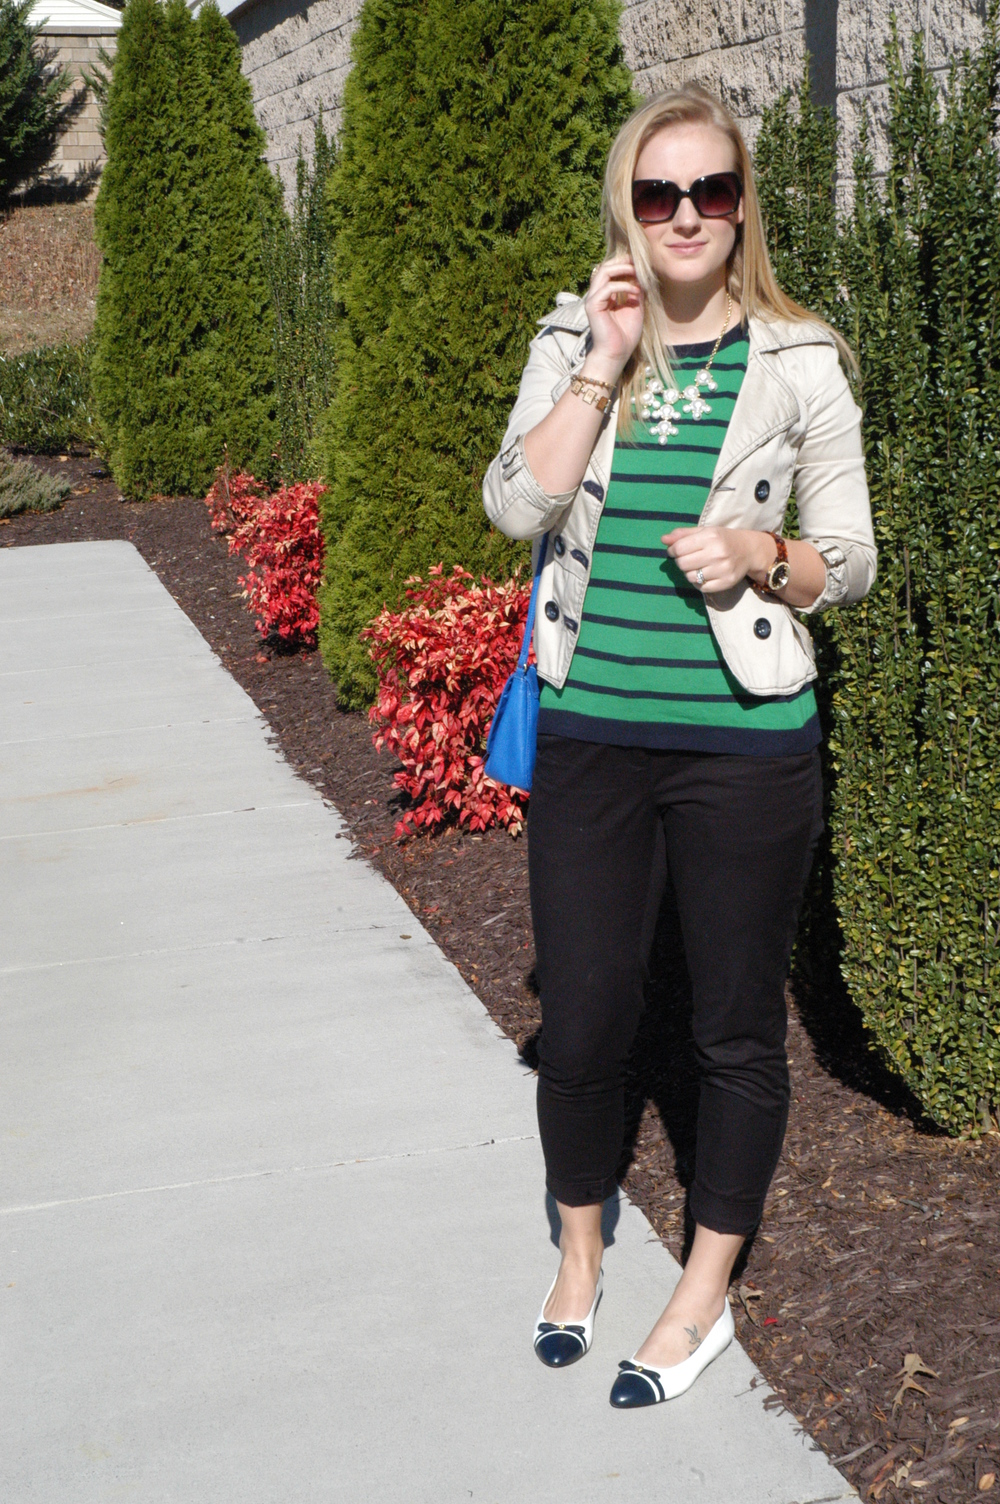 Jacket: not sure from where, either TJMaxx or Rugged Wearhouse | Sweater: Old Navy | Slacks: H&M | Flats: Goodwill | Purse: H&M | Shades: Cole Haan | Jewelry: BaubleBar, 2020AVE, LC Lauren Conrad, H&M, Target